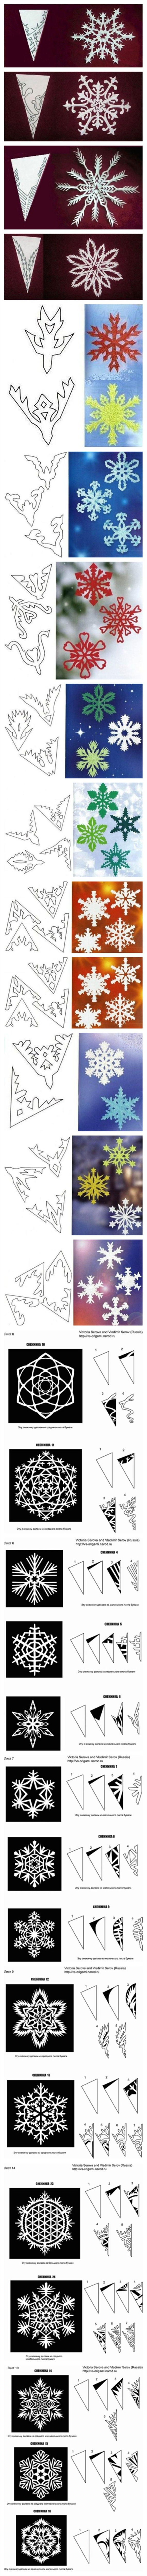 paper snow flakes - awesome patterns!